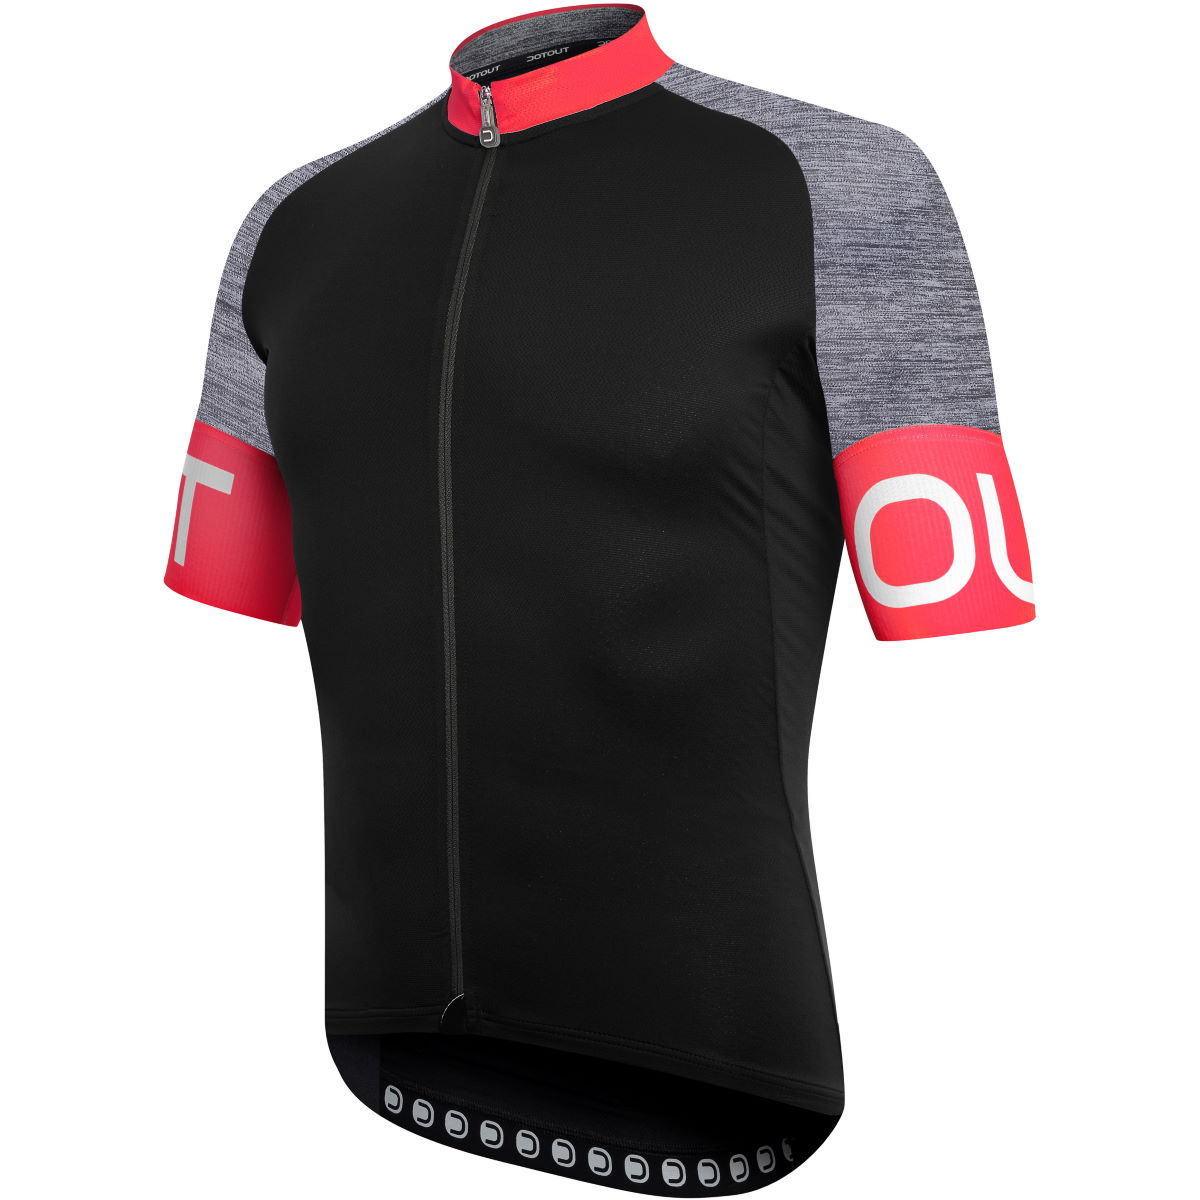 Maillot Dotout Pure - S Black - Red Maillots